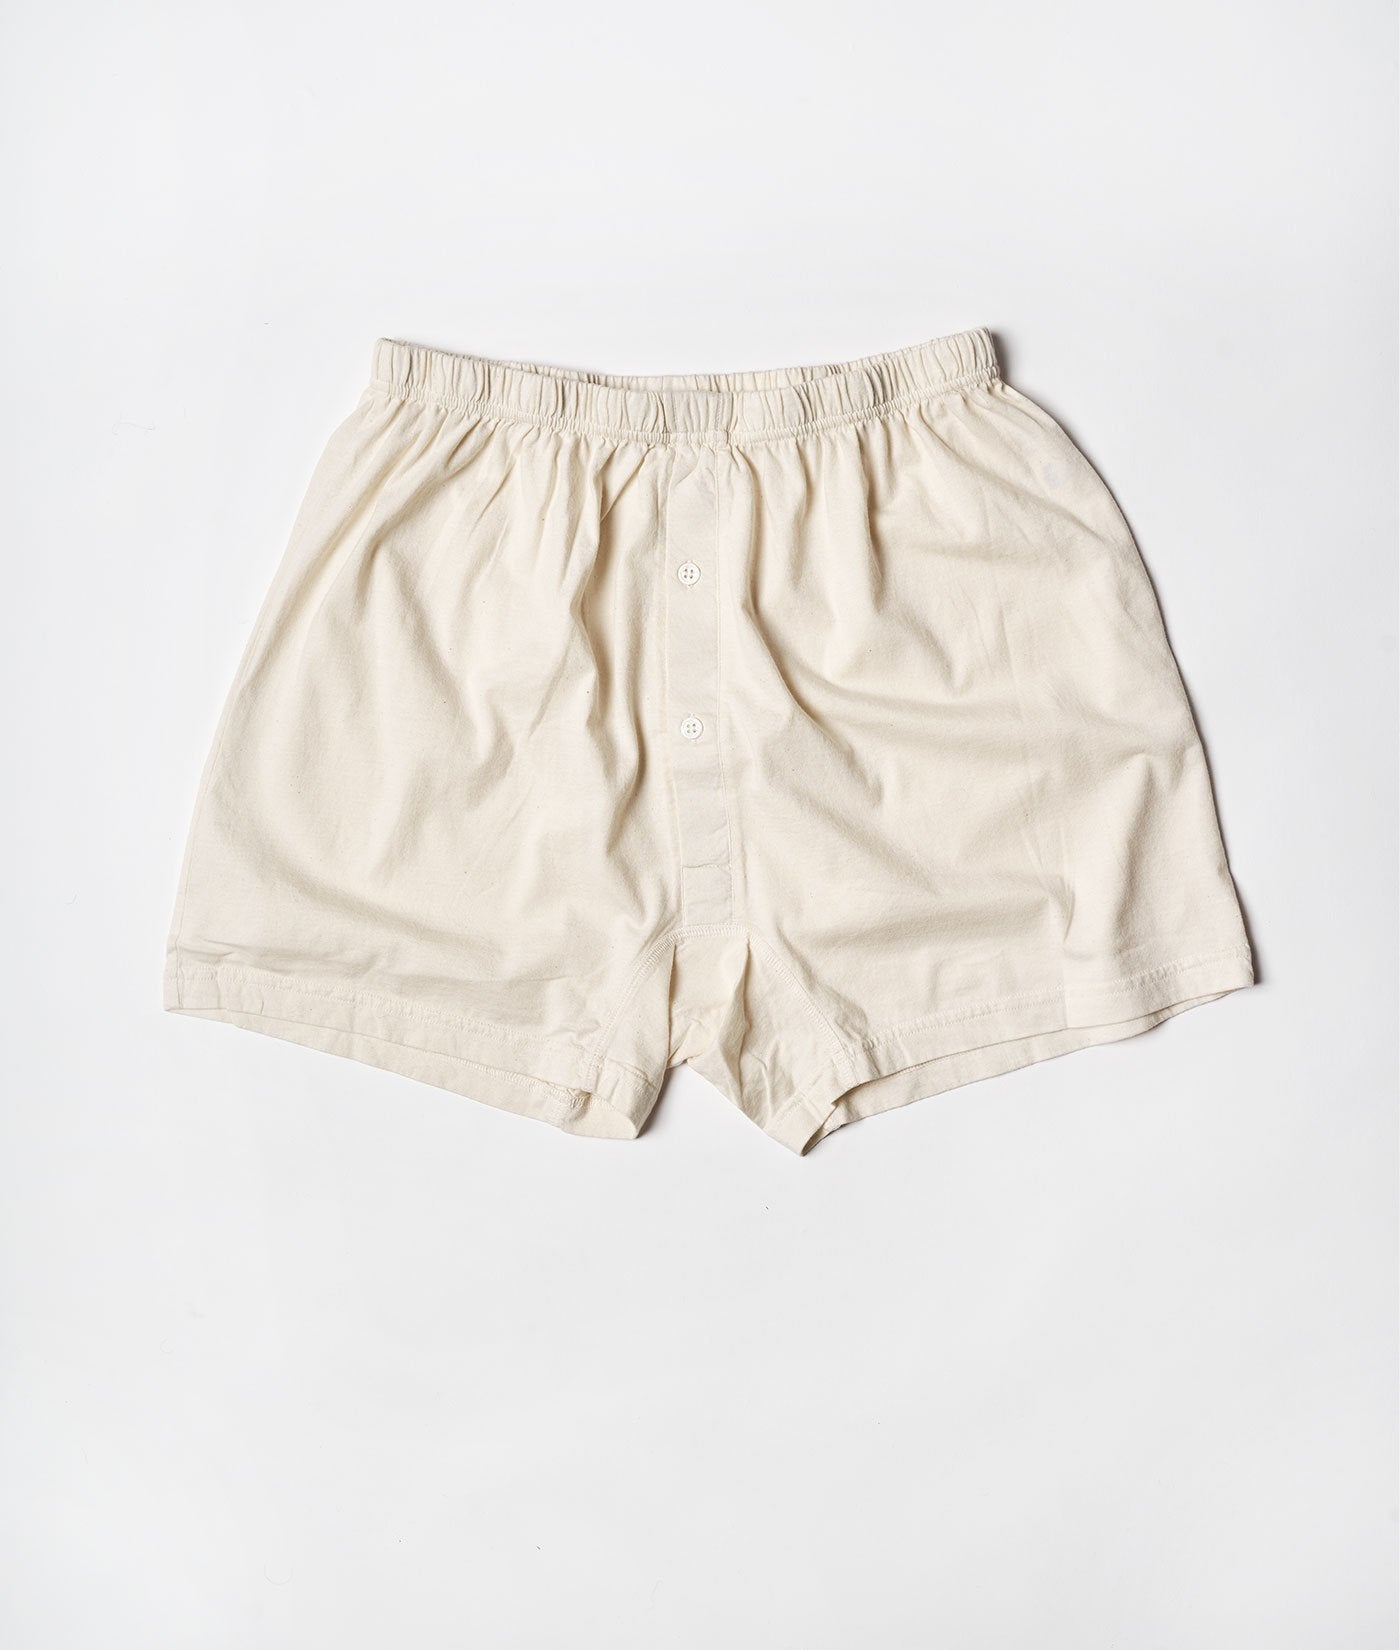 Industry of All Nations Organic Cotton Underwear Natural